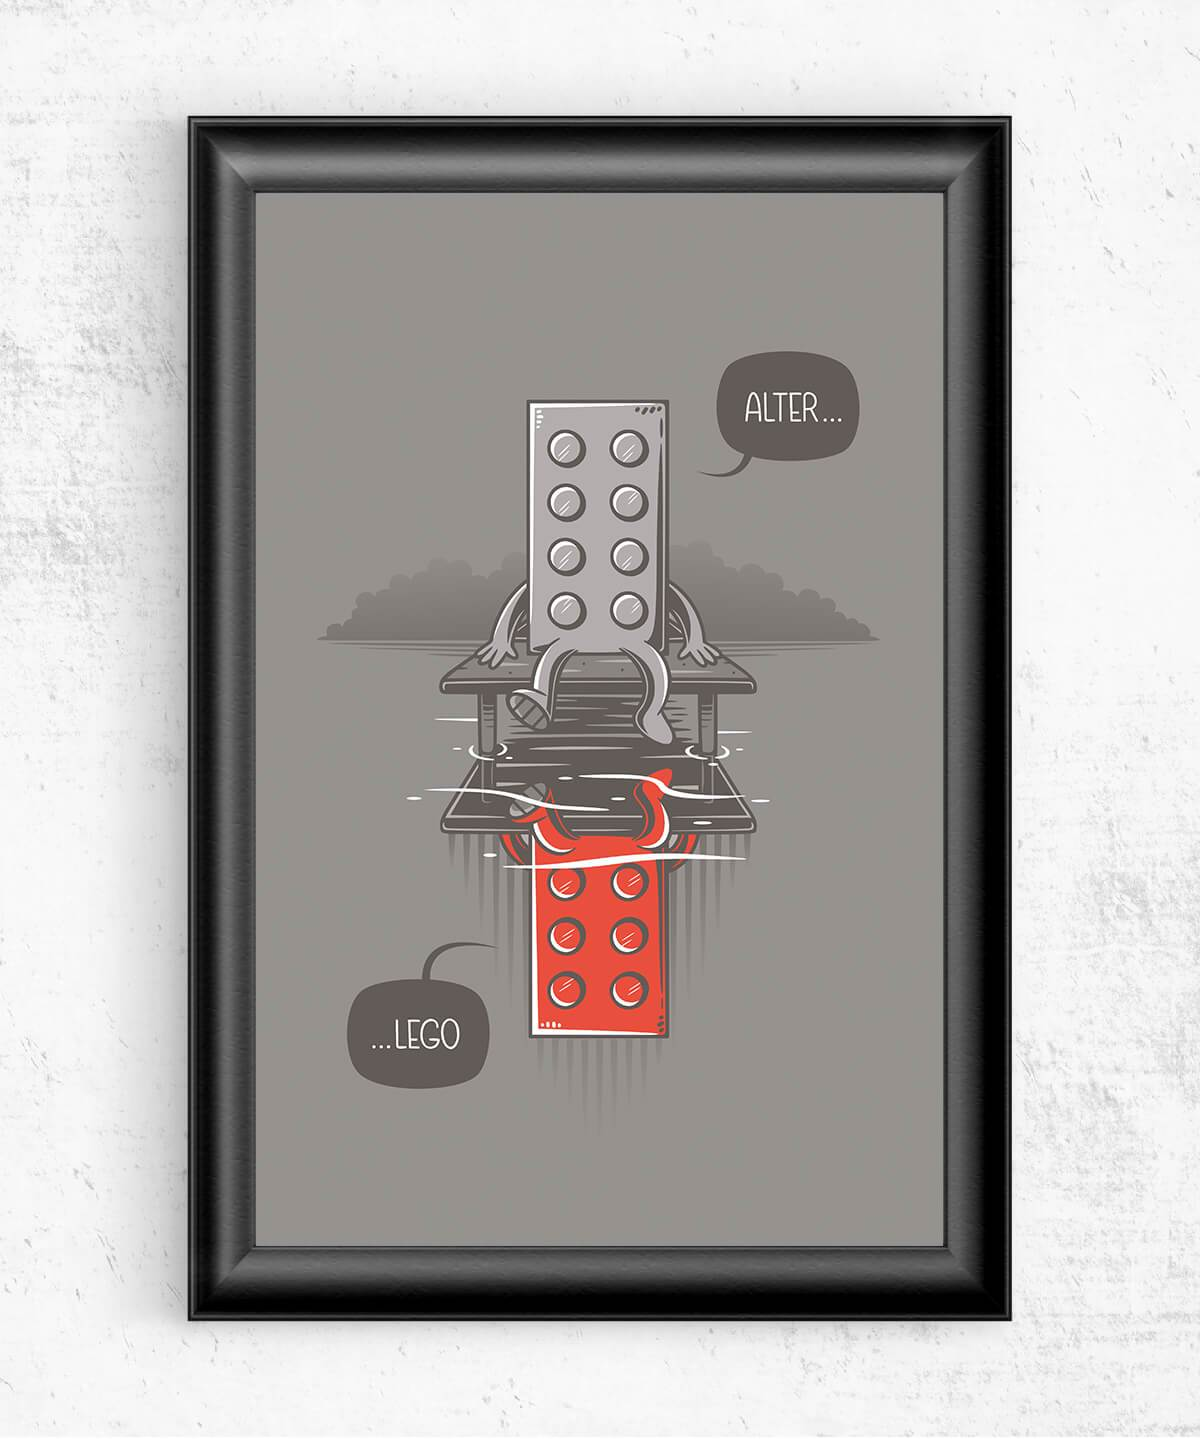 Alter LEGO Posters by Elia Colombo - Pixel Empire